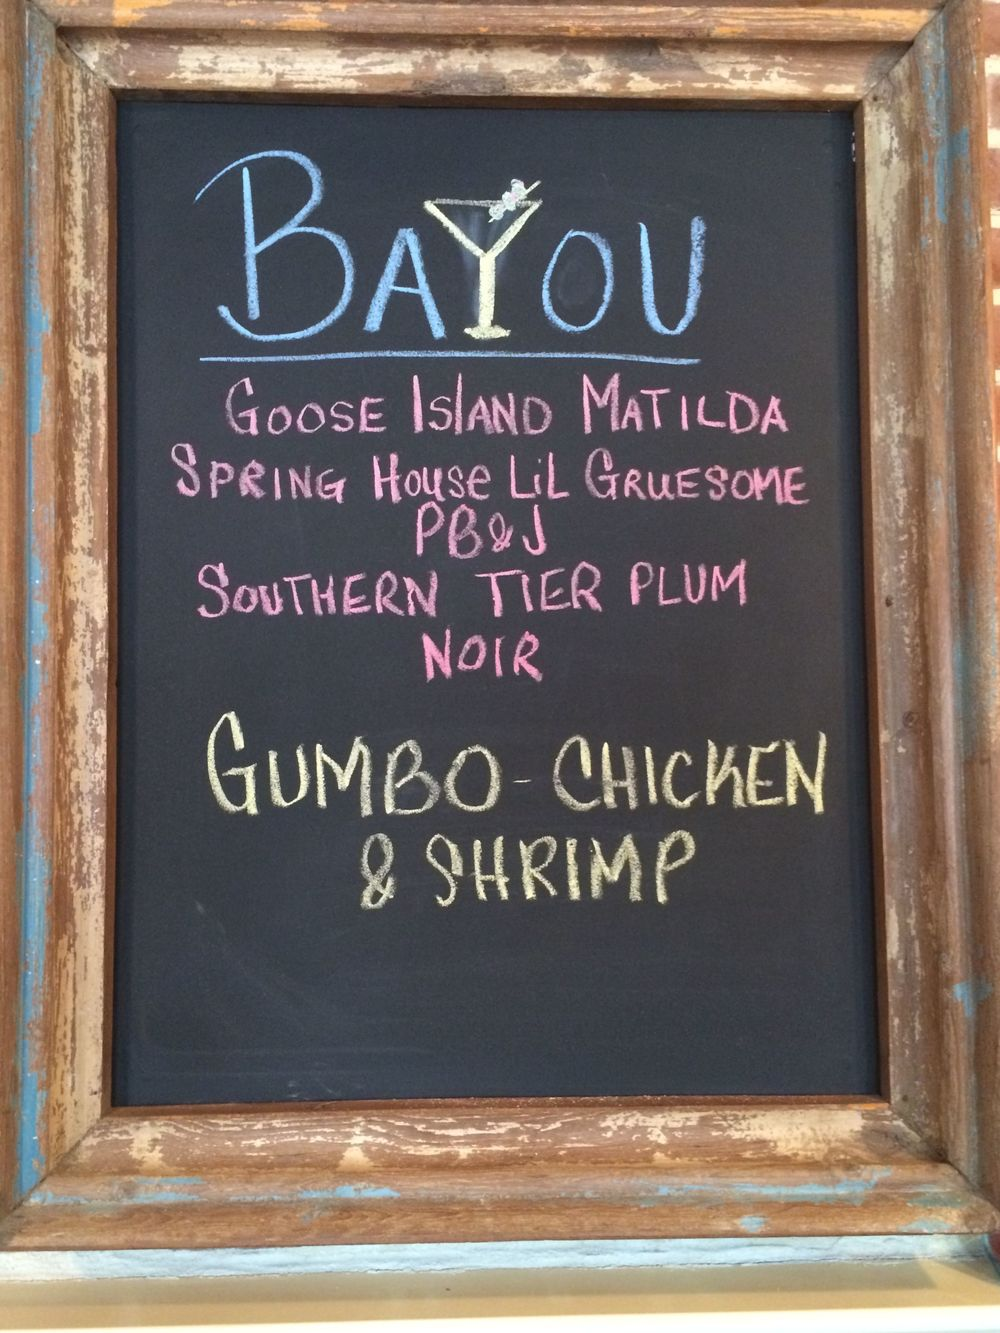 The chalkboard at the Bayou